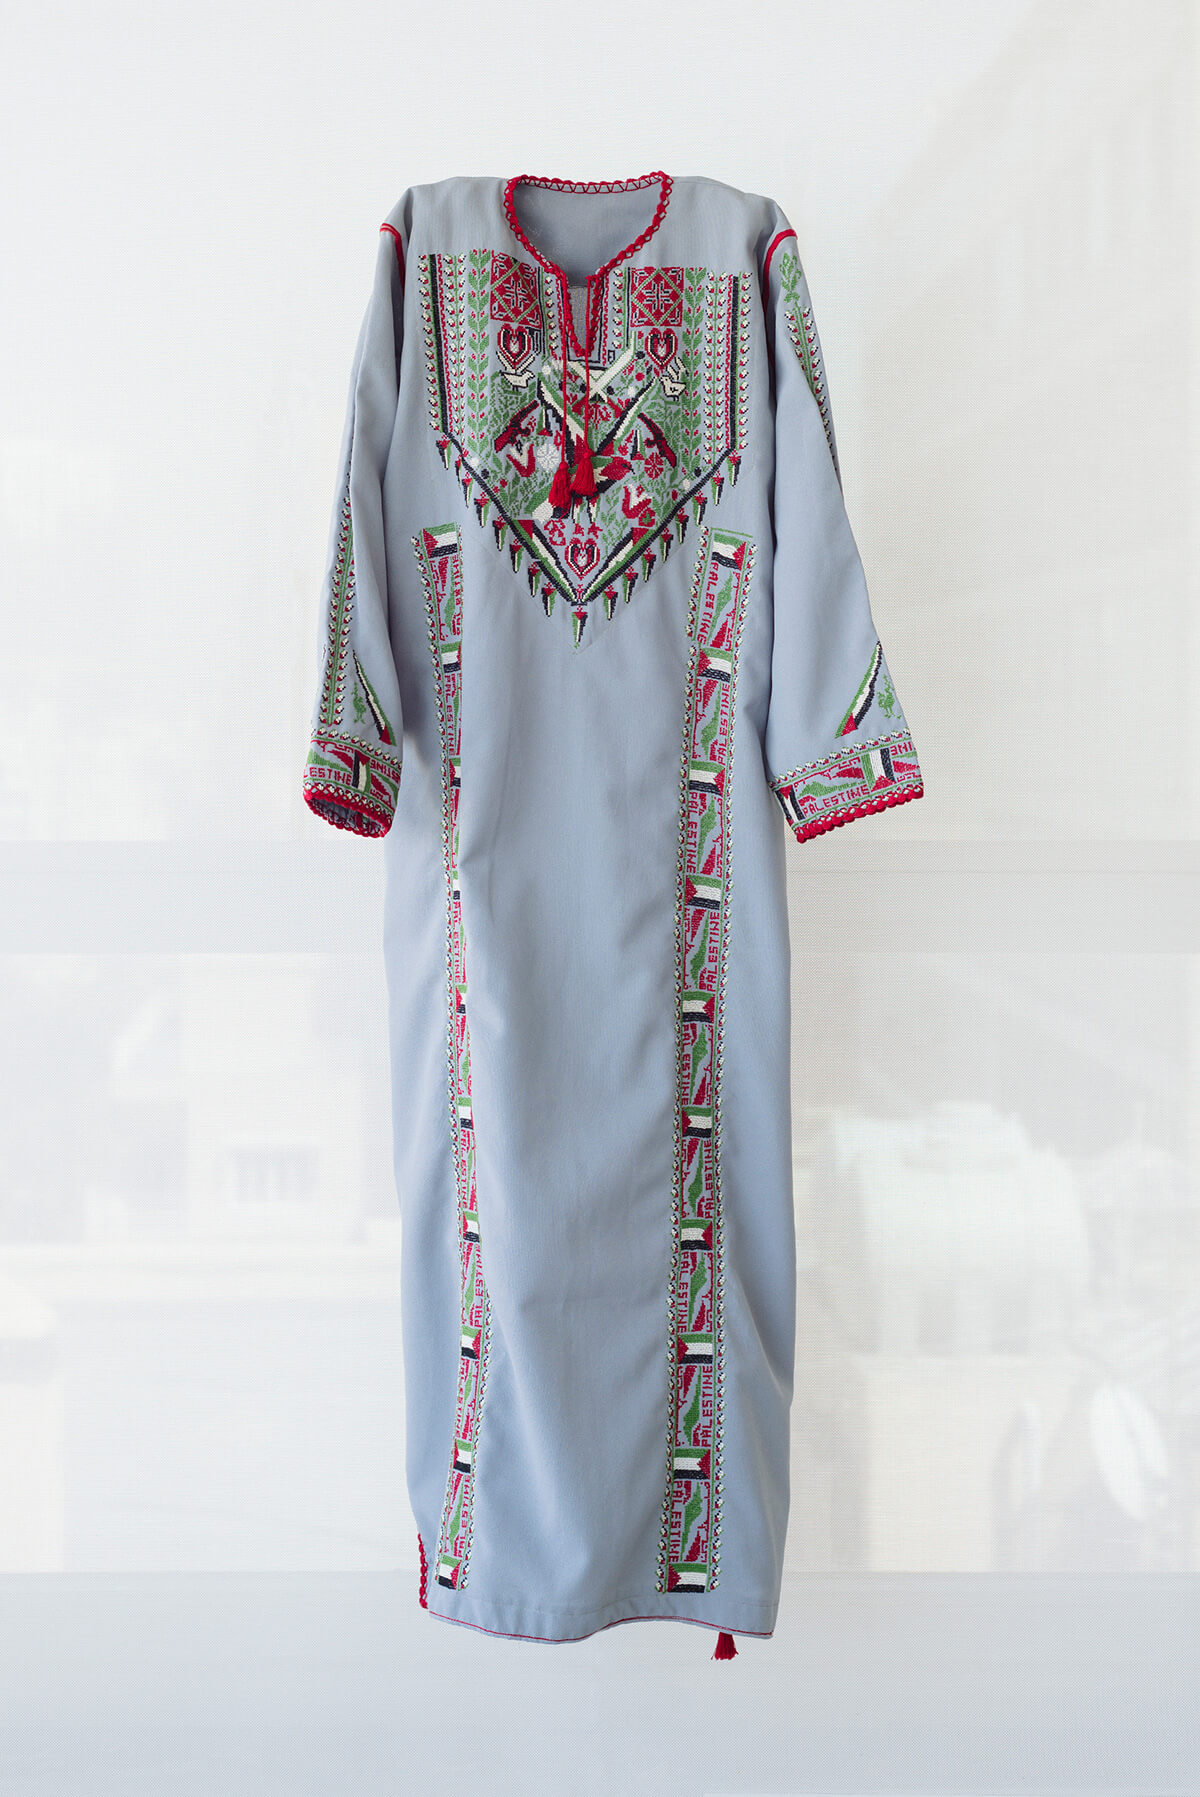 Intifada dress, 1987-1993, from the collection of Tiraz: Widad Kawar Home for Arab Dress, photos Tanya Traboulsi for the Palestinian Museum.